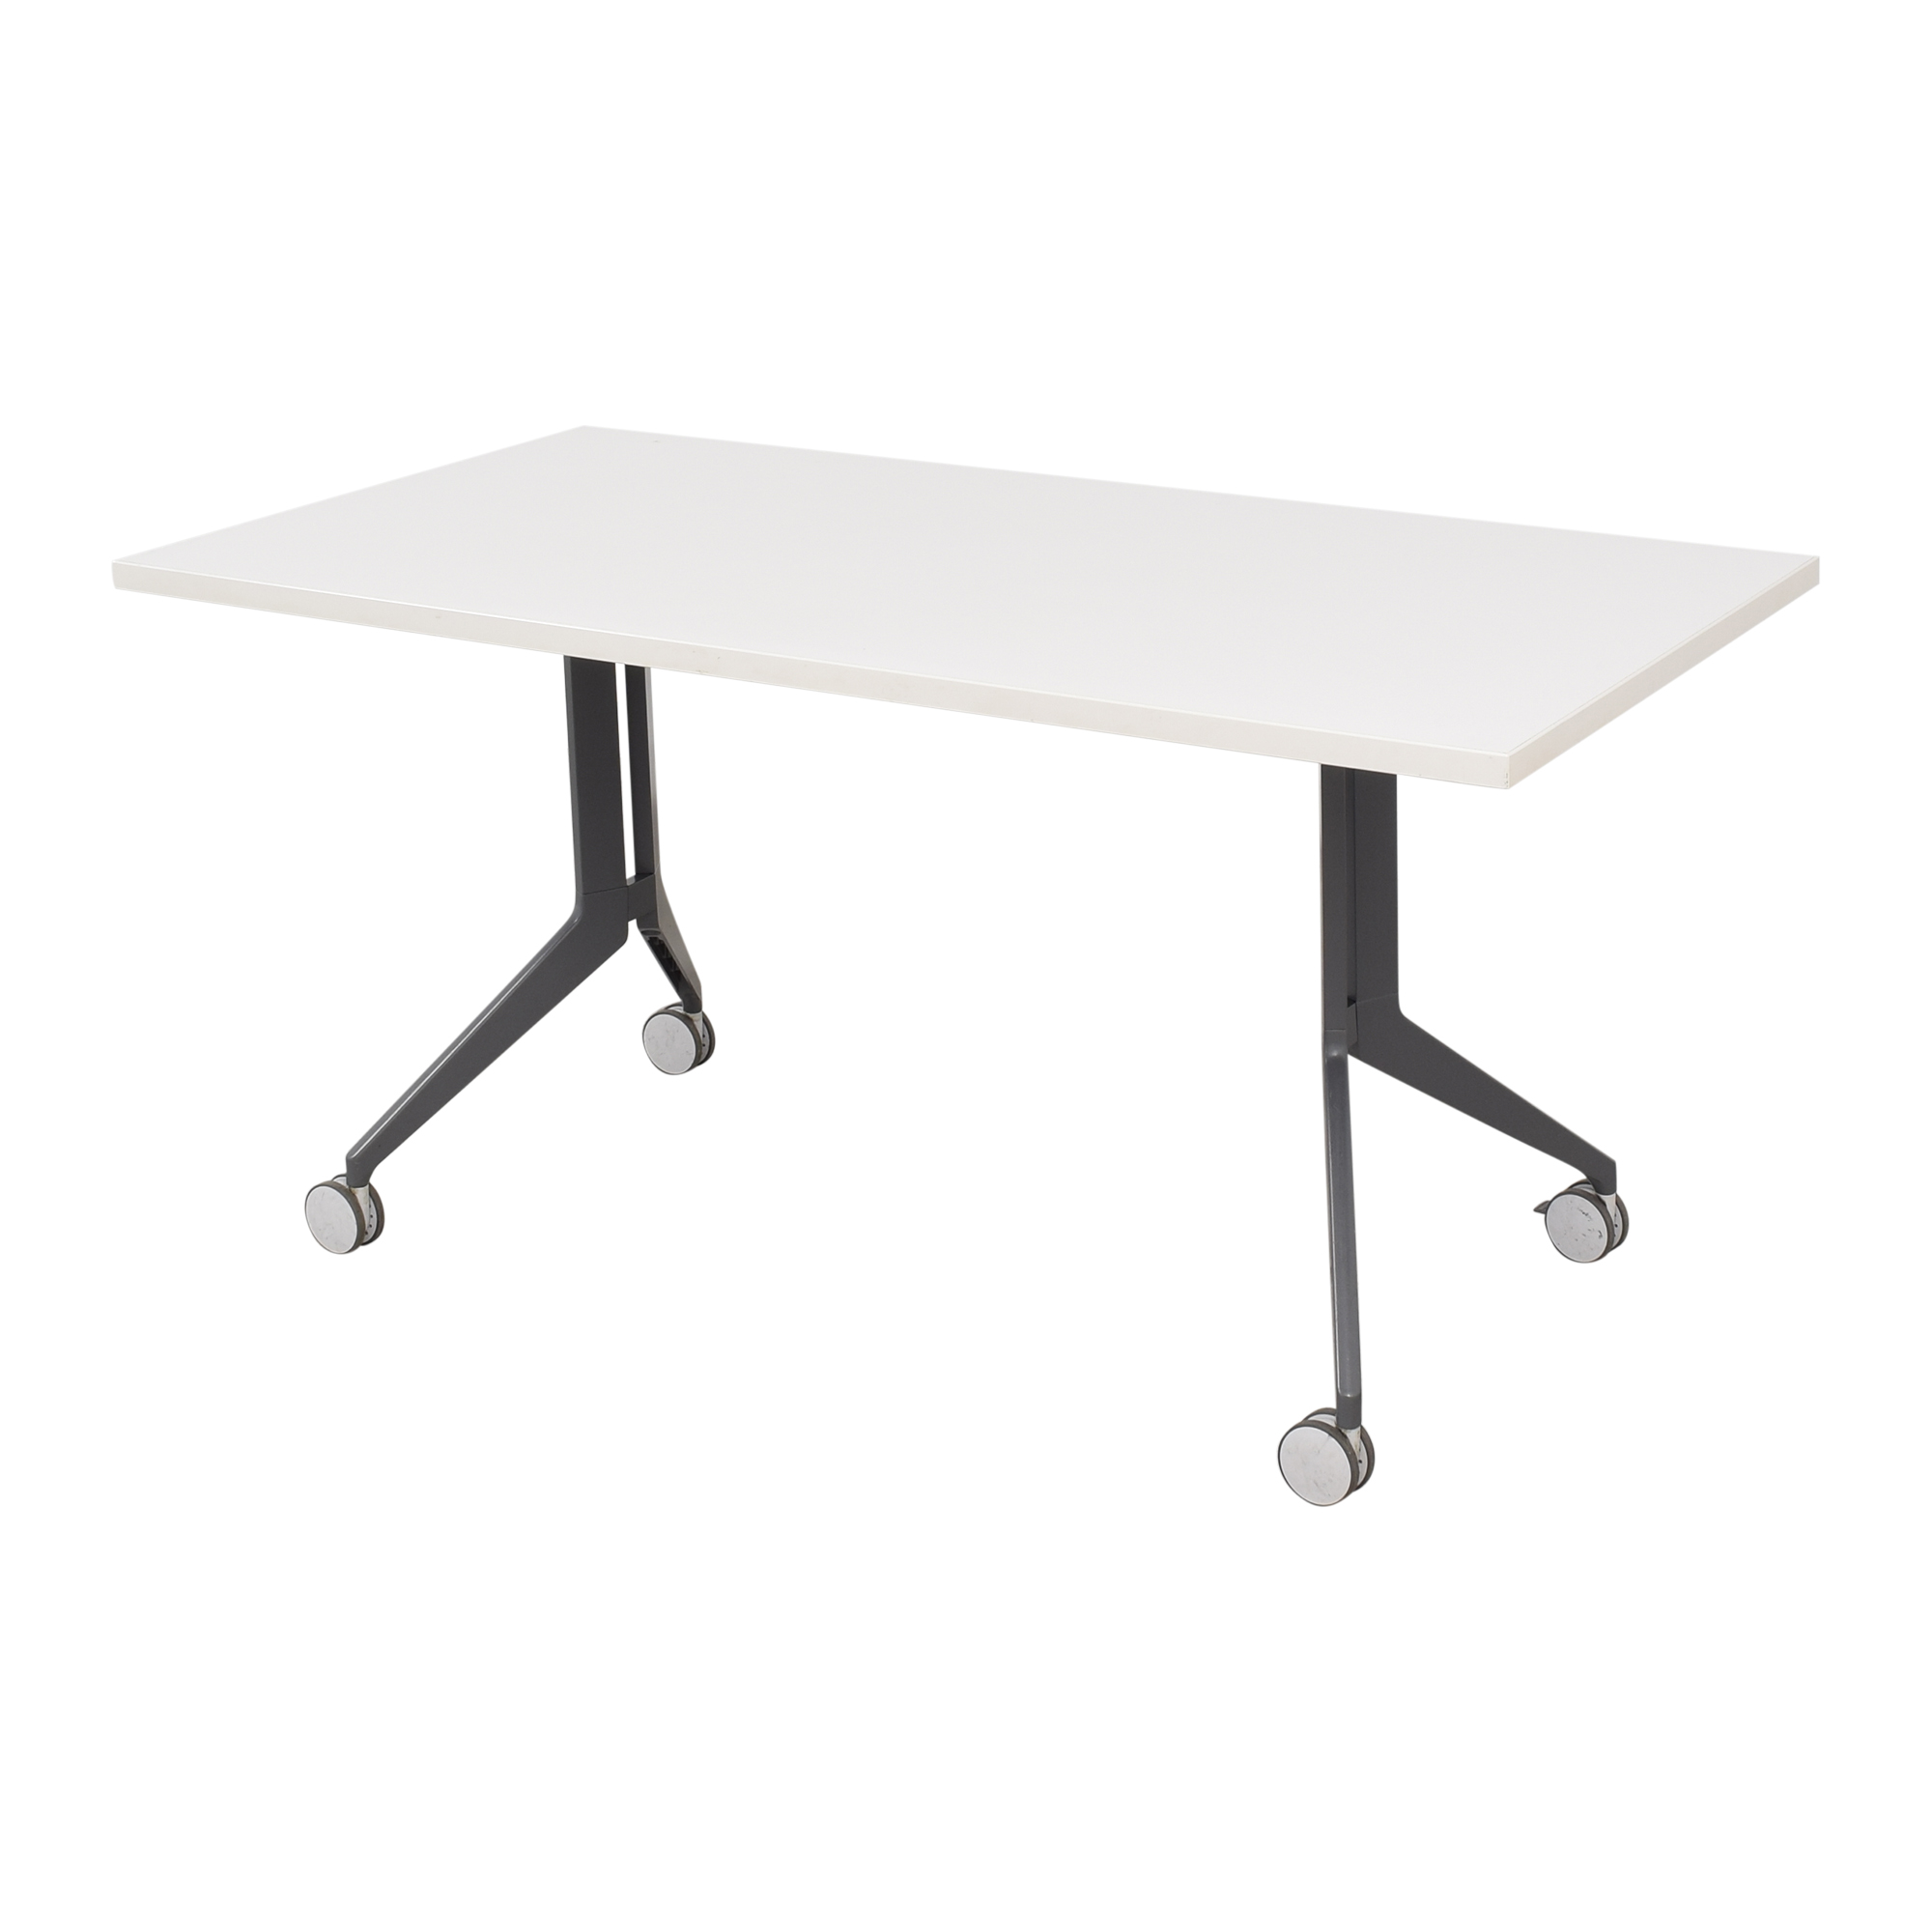 Haworth Haworth Planes Collaborative Desk dimensions